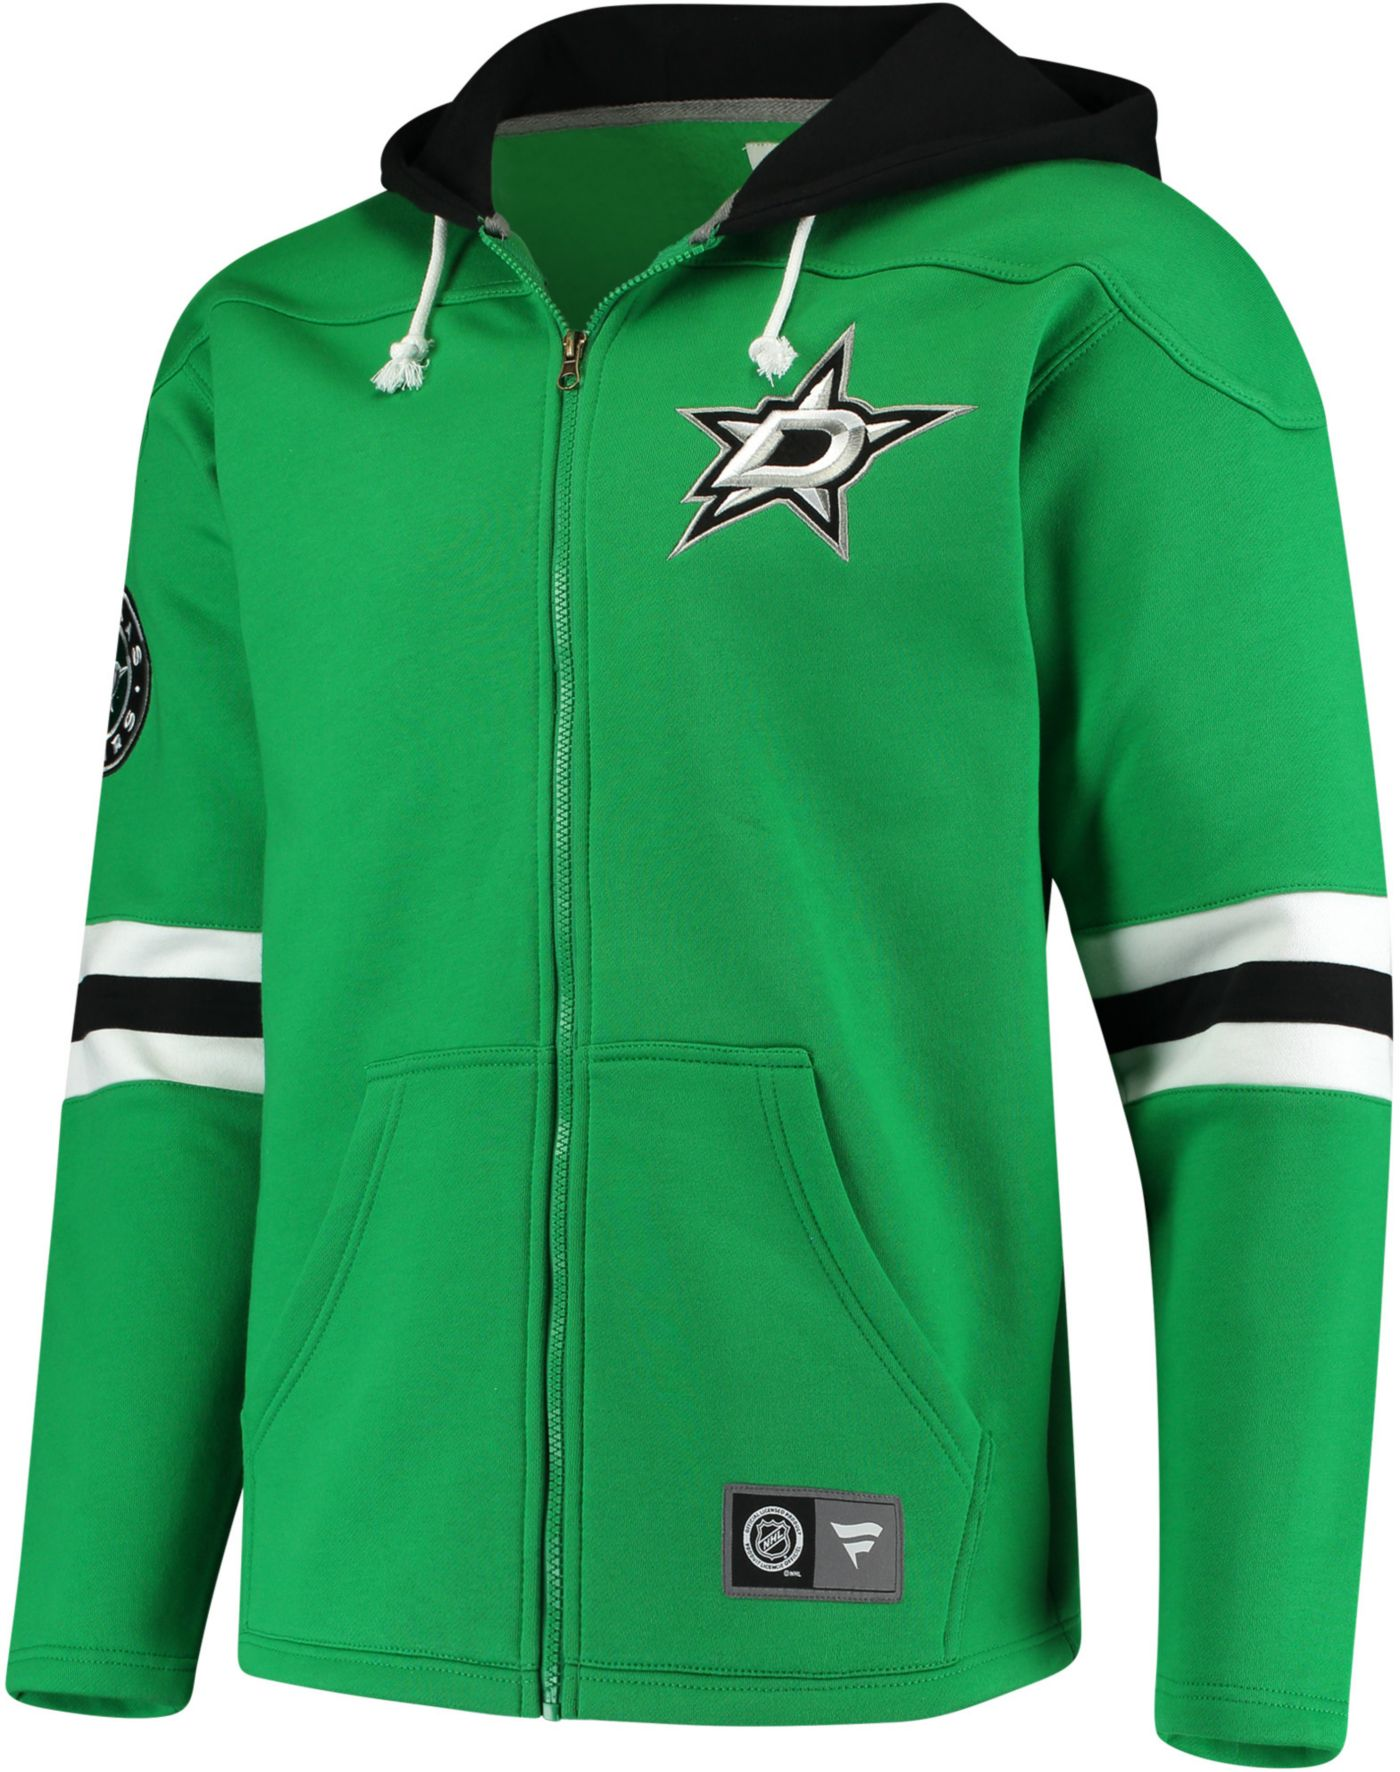 NHL Men's Dallas Stars Breakaway Green Full-Zip Sweatshirt